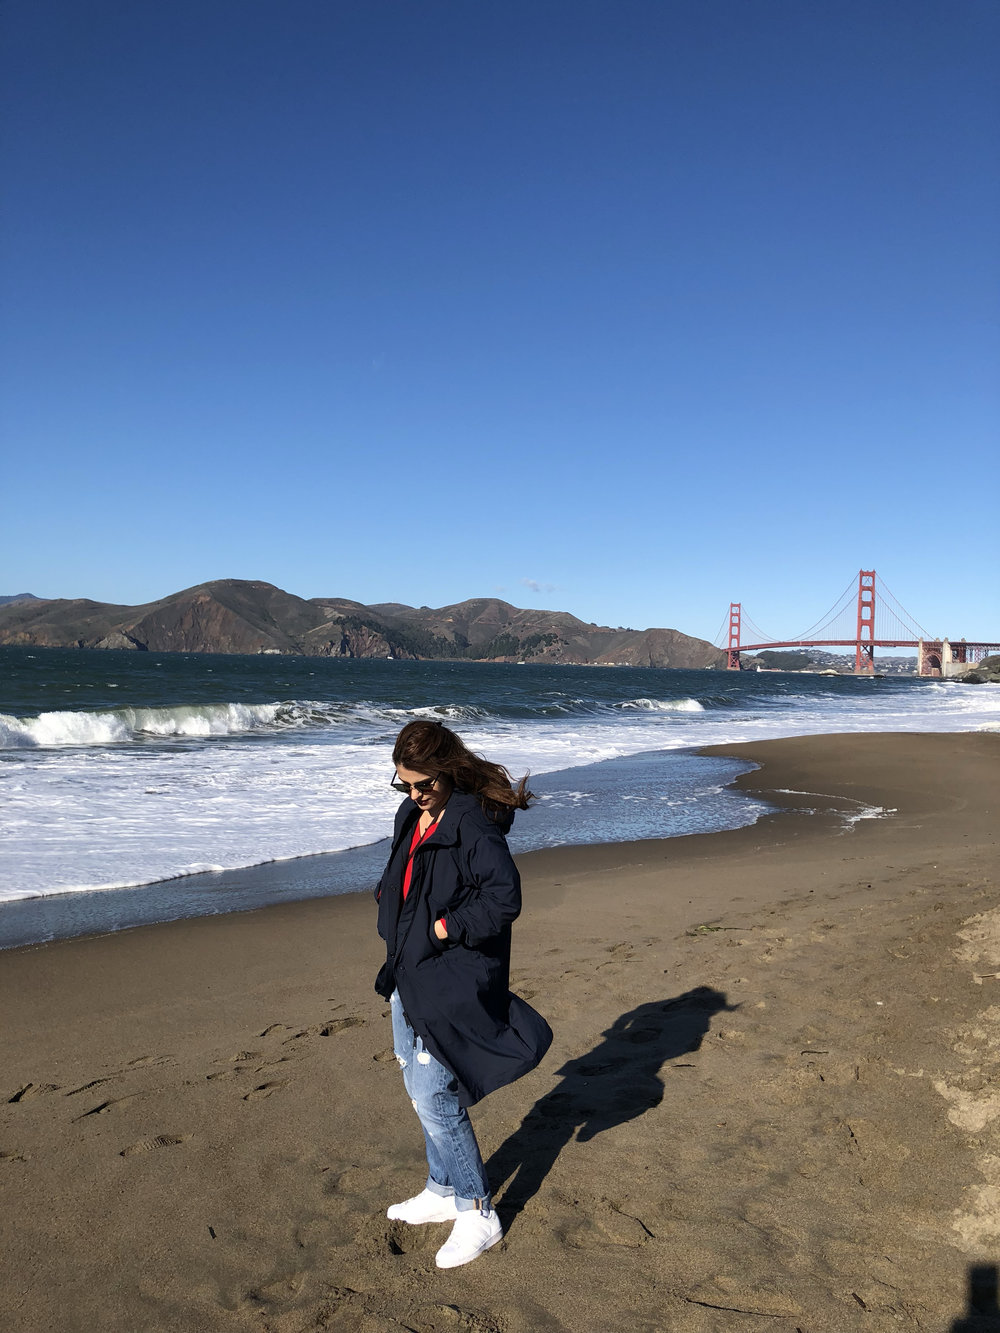 Freezing my butt off at Baker Beach